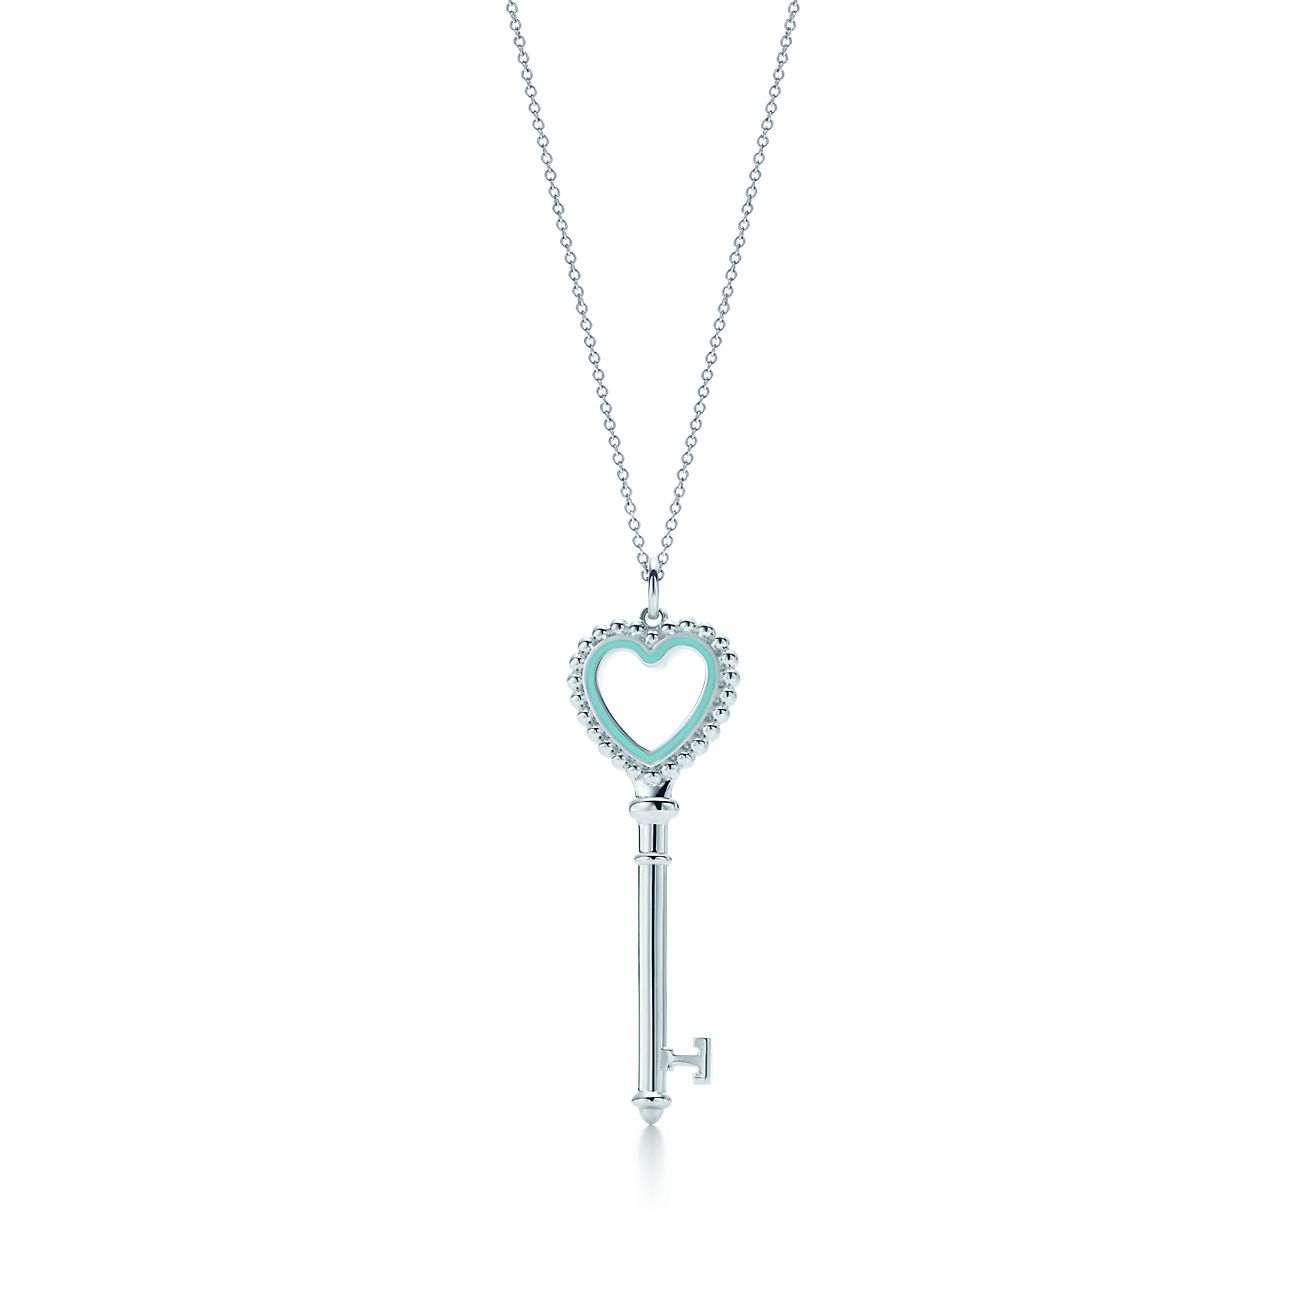 Tiffany keys beaded heart key pendant in silver with enamel finish tiffany keysbeaded heart key pendant aloadofball Gallery